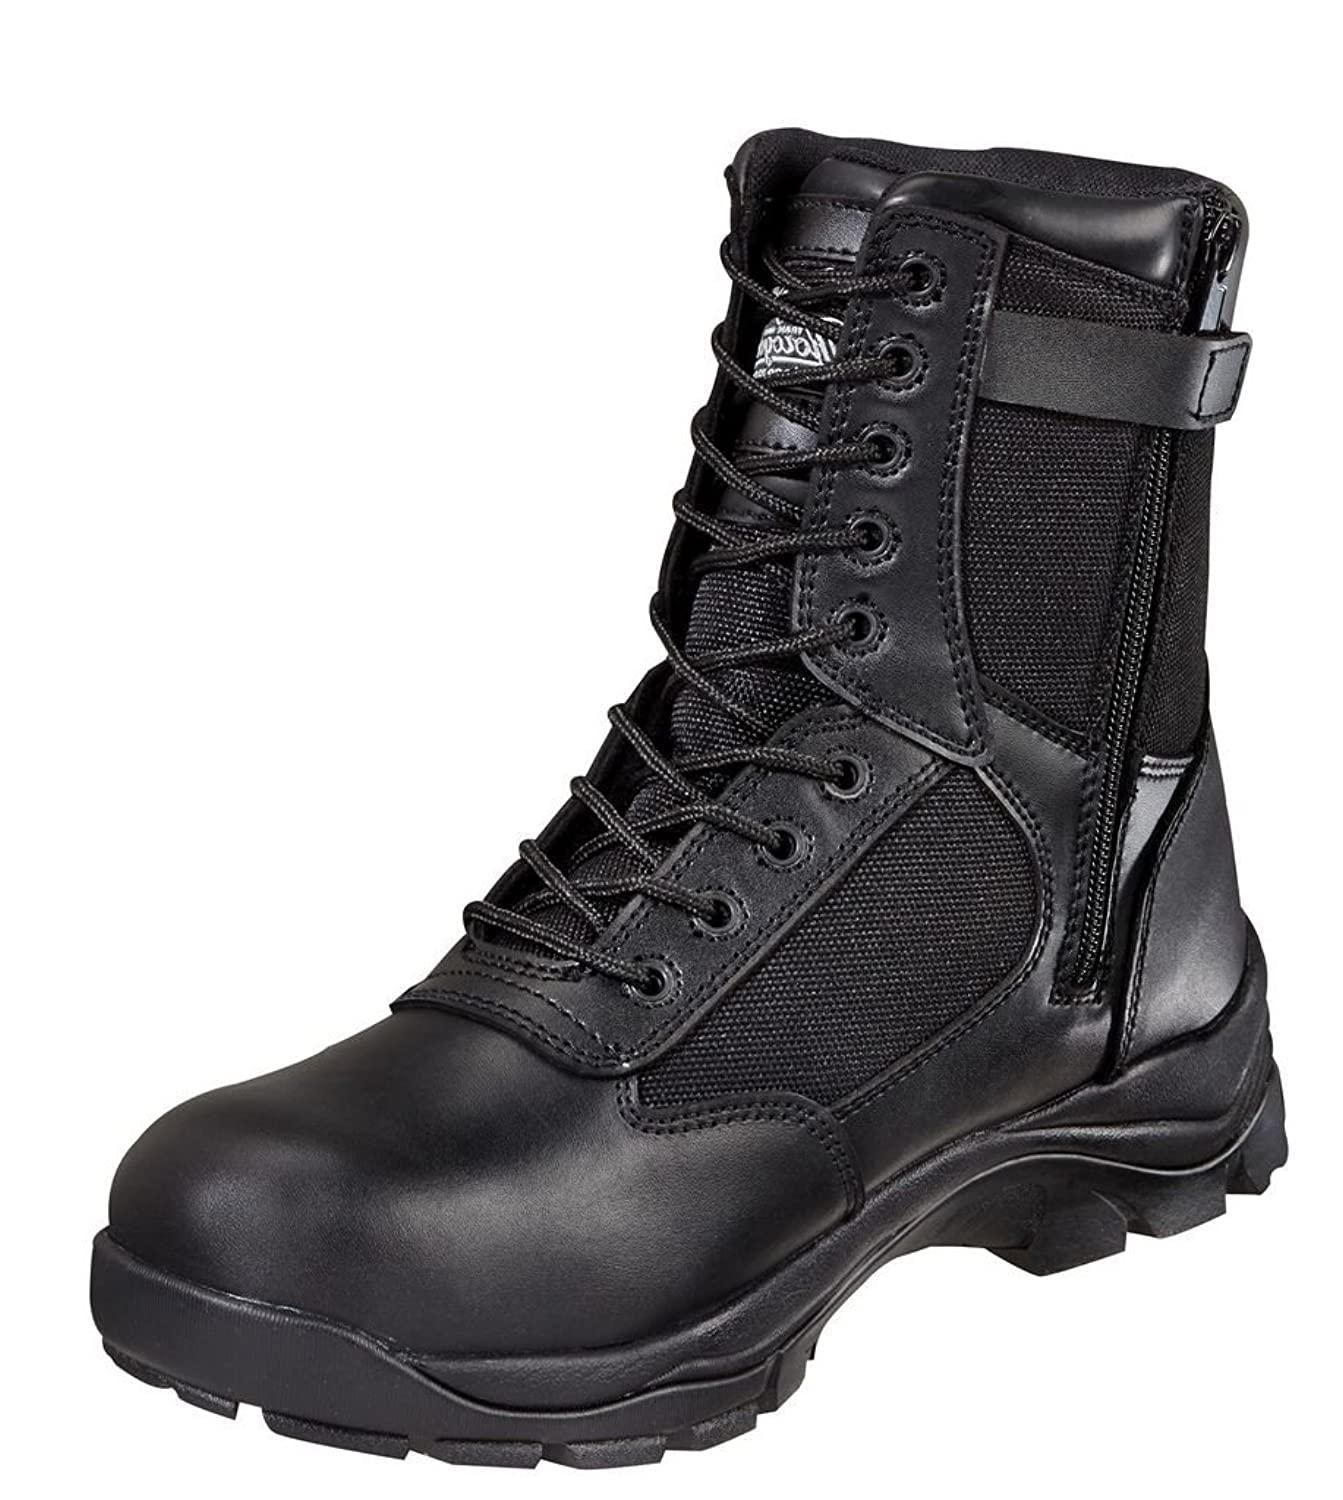 834-6044 Thorogood Men's Side Zipper 8IN Uniform Boots - Black